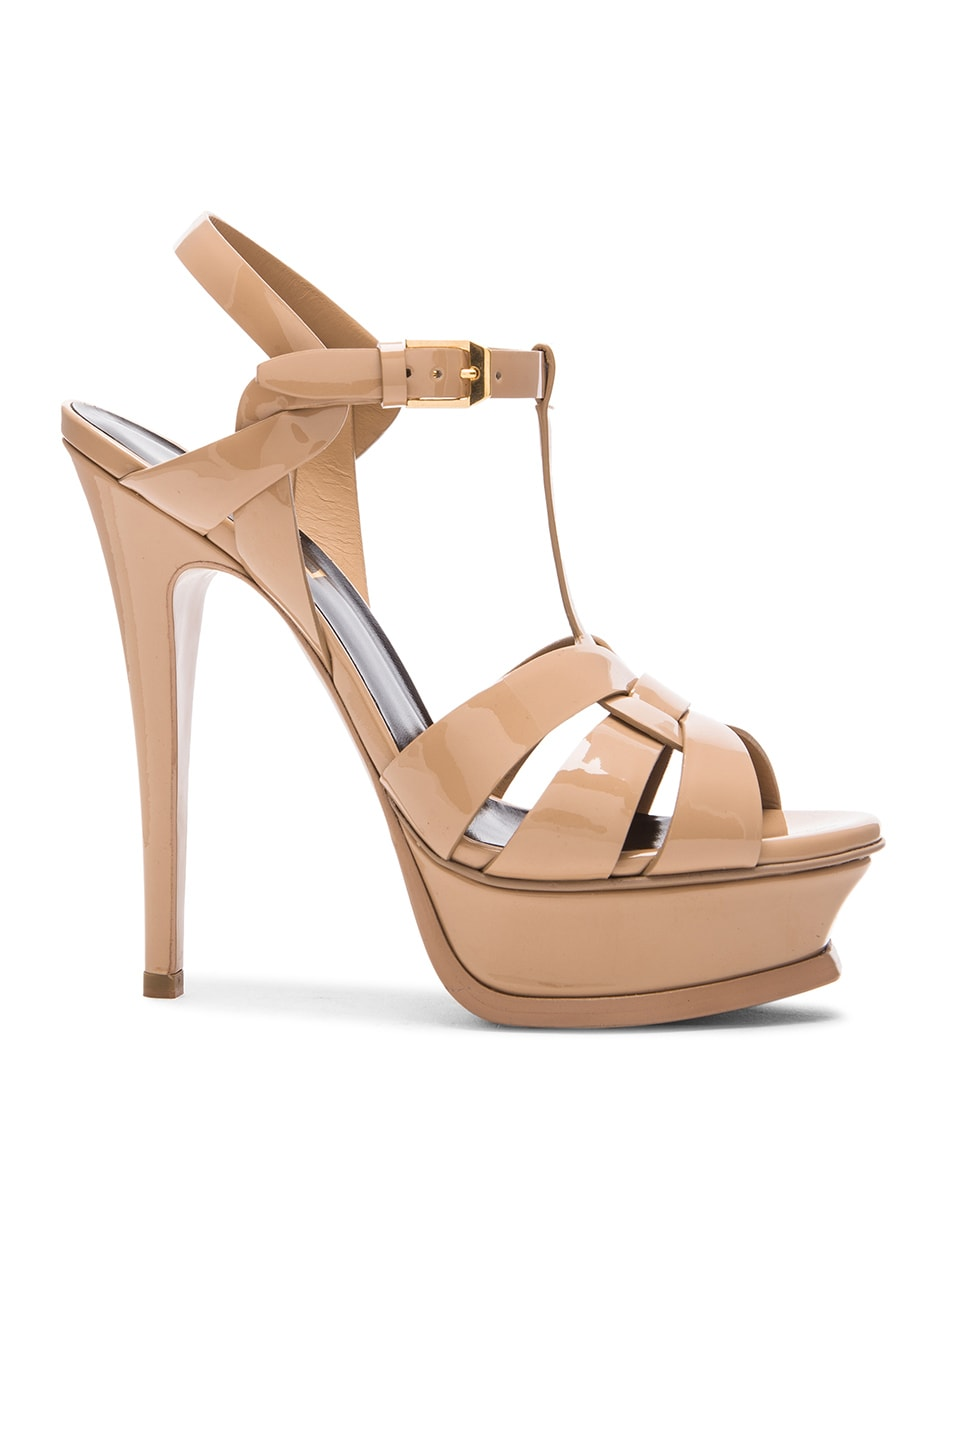 Image 1 of Saint Laurent Tribute Patent Leather Platform Sandals in Darker Nude